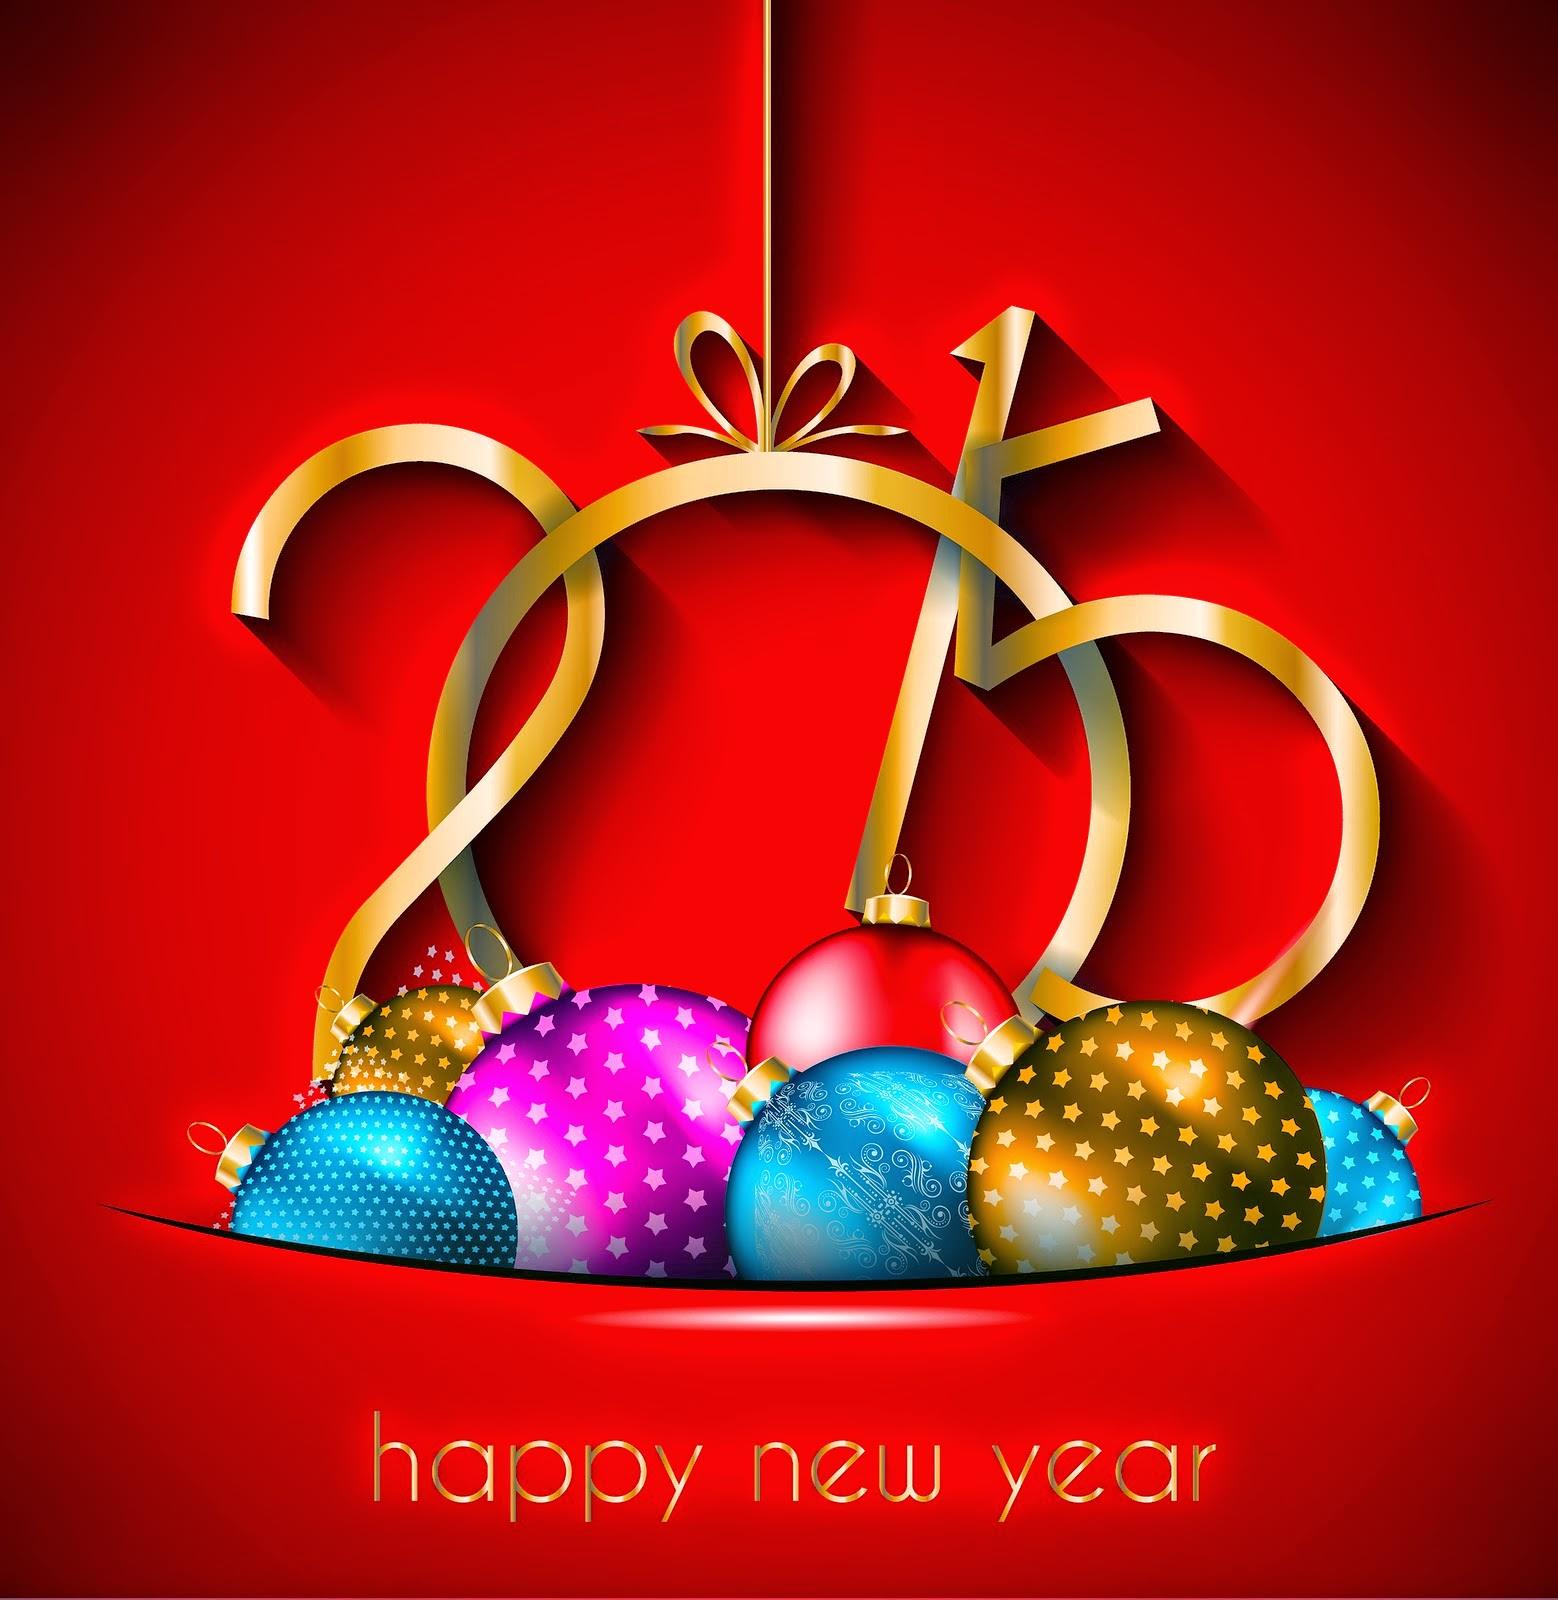 new year 2017 images hd for mom wishes